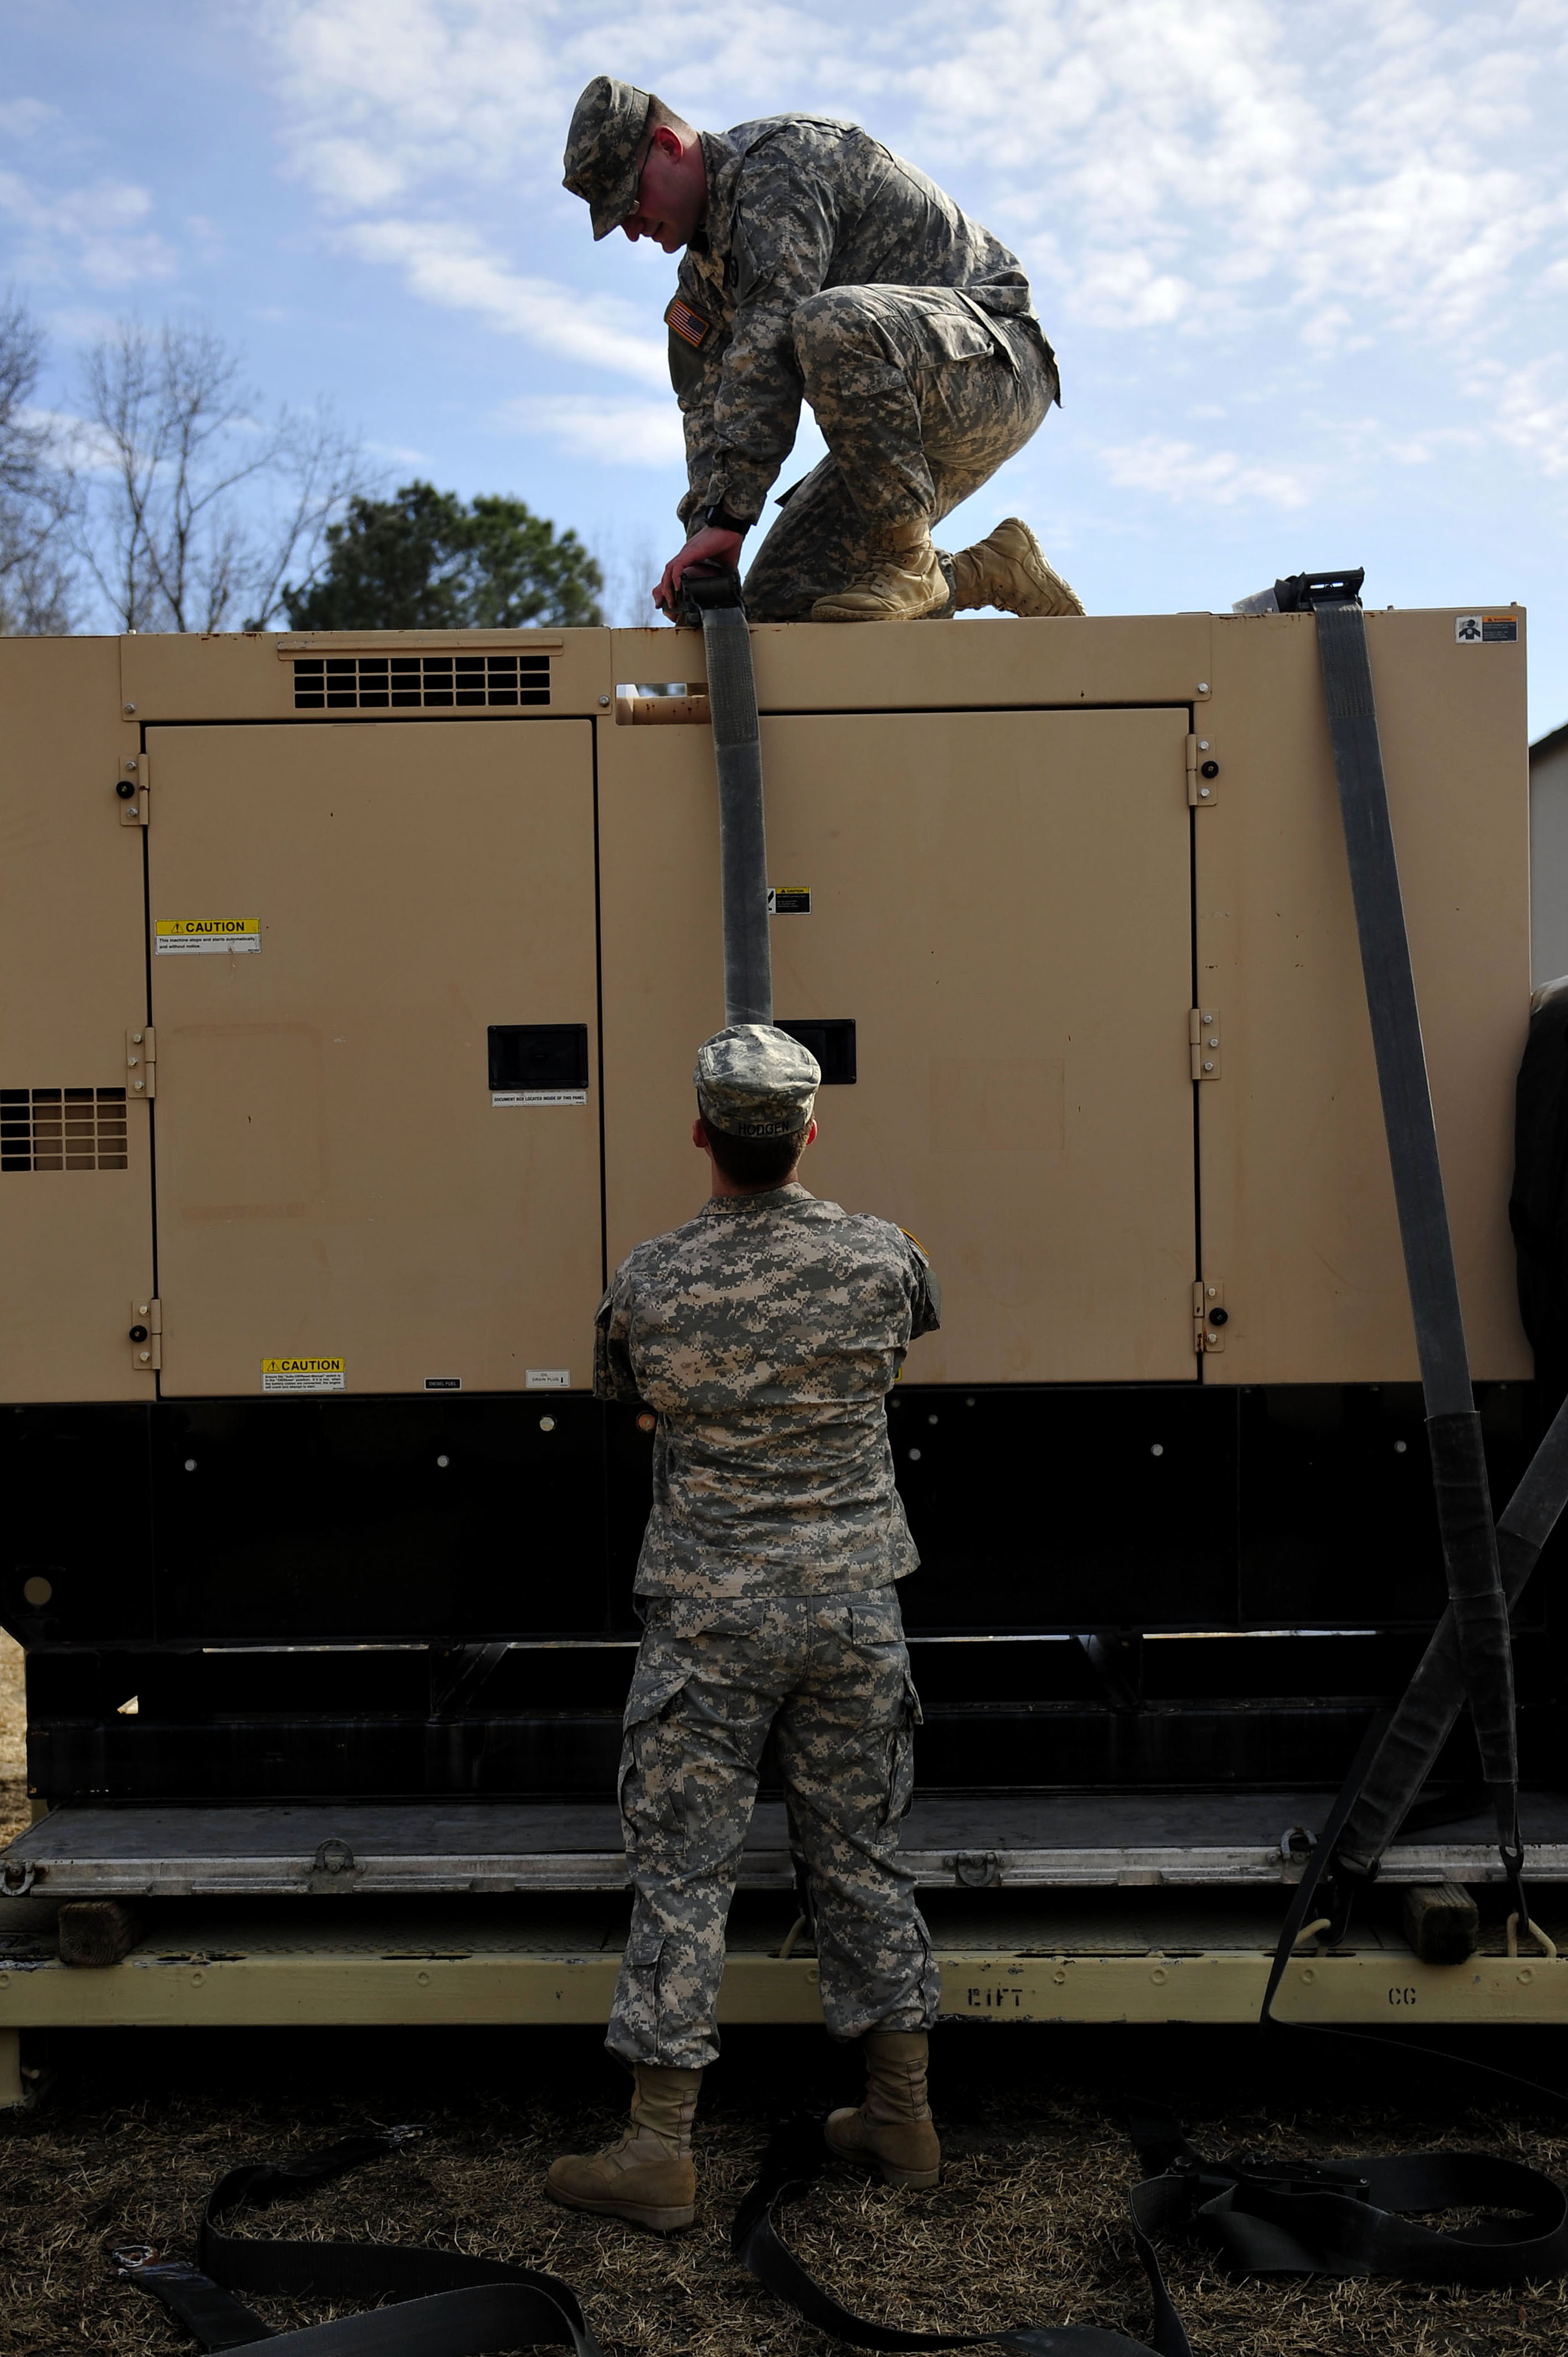 833rd aero squadron - 833rd Trans Bn Soldiers Build Command Post From Ground Up